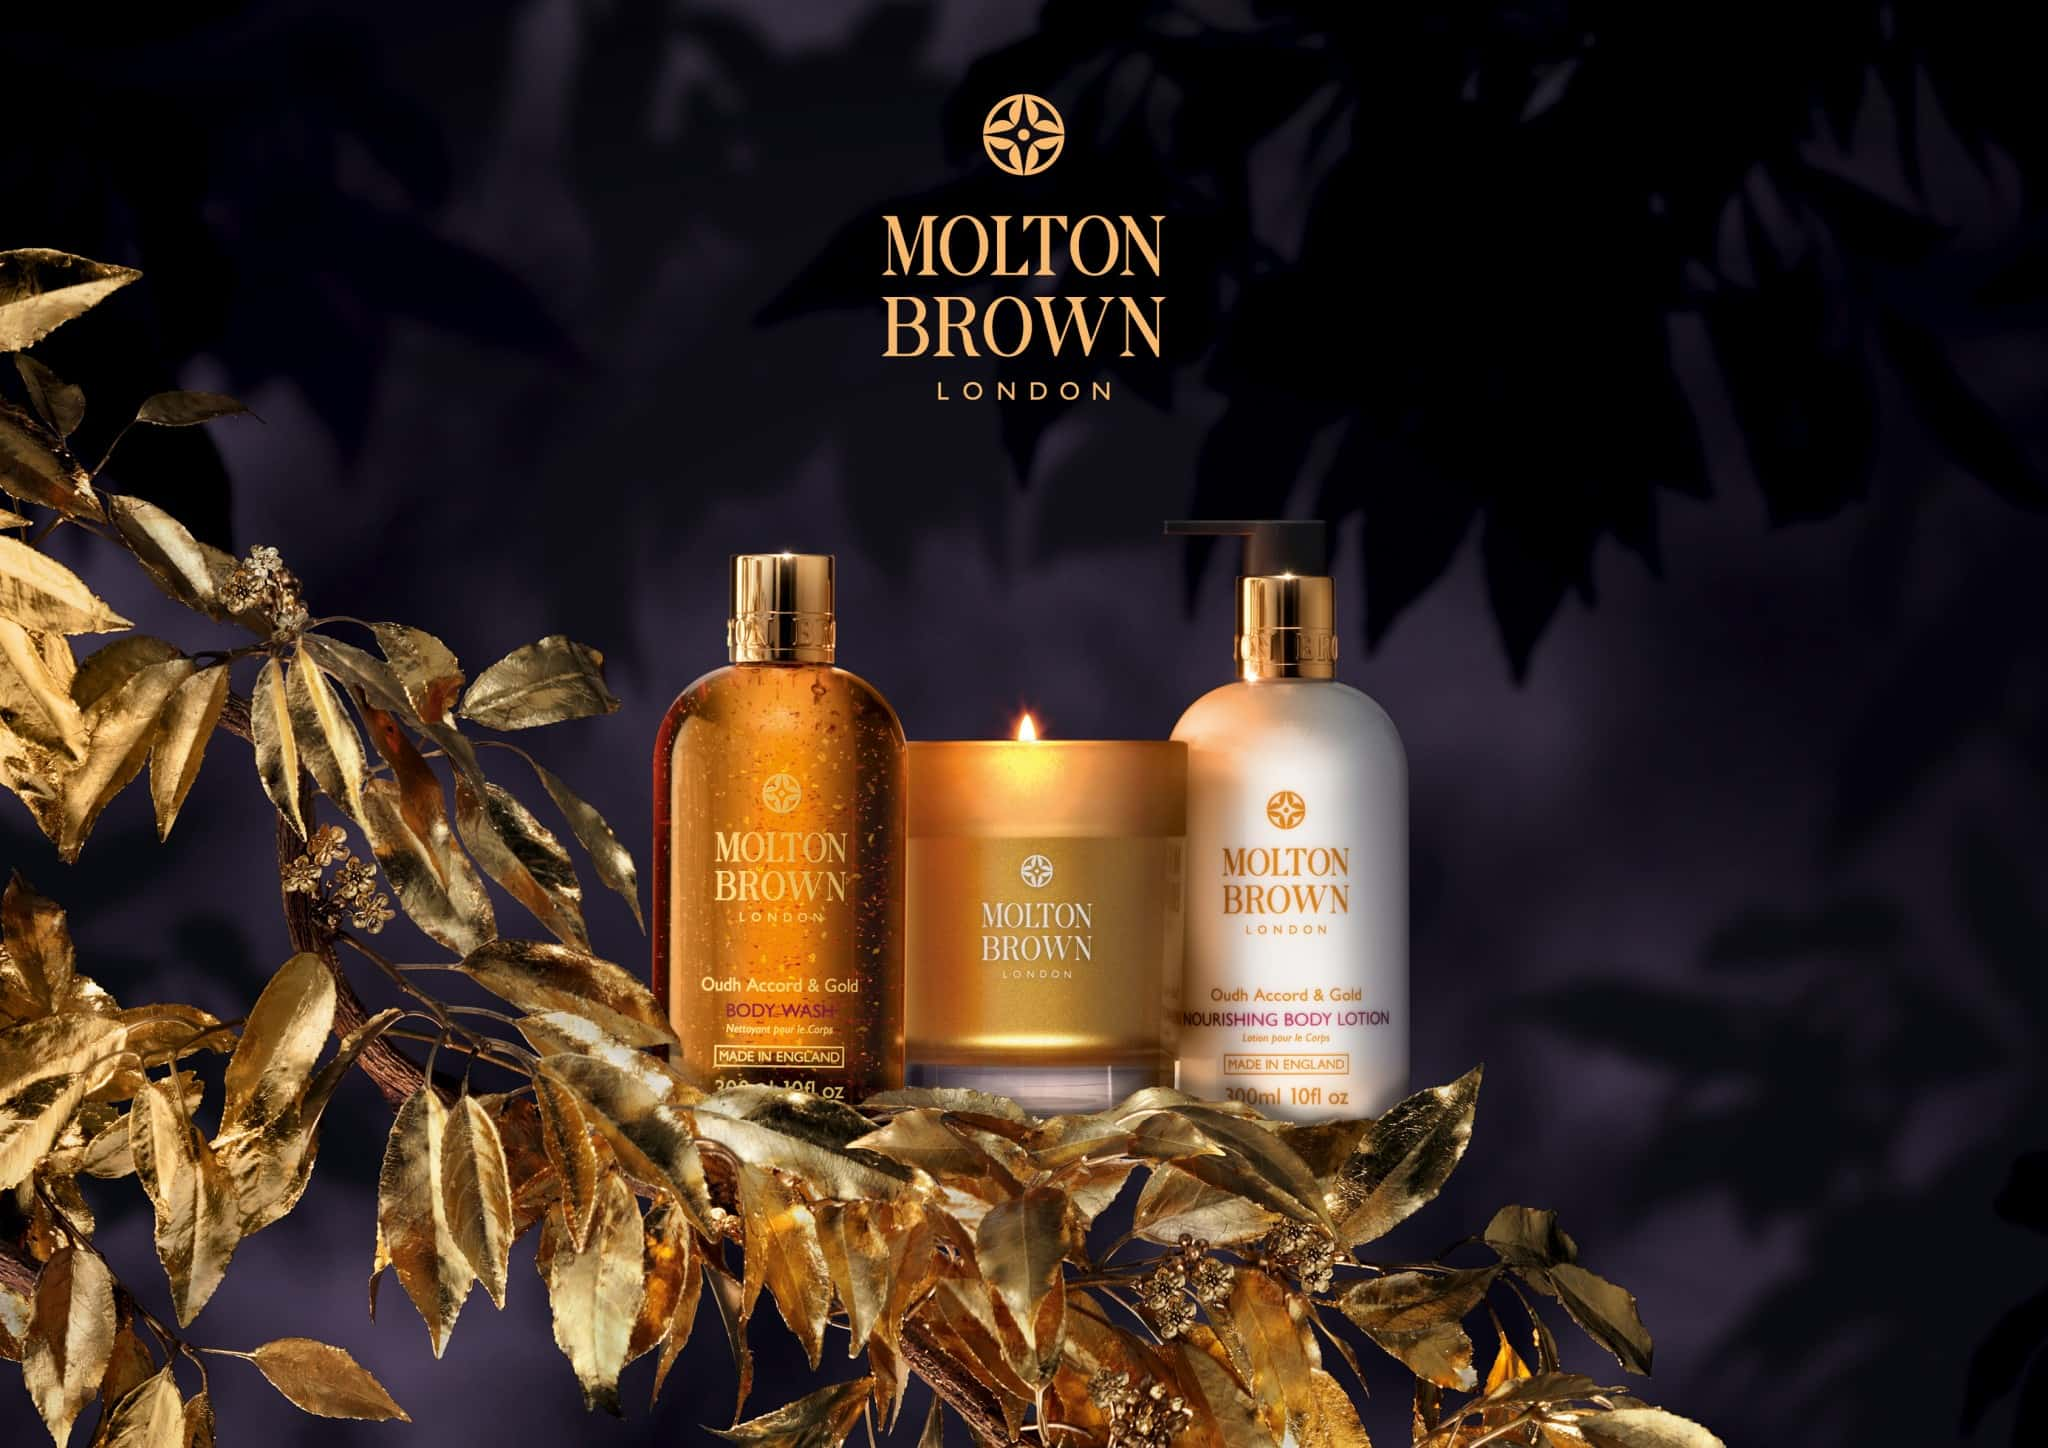 Molton Brown Oudh Accord & Gold 1-1